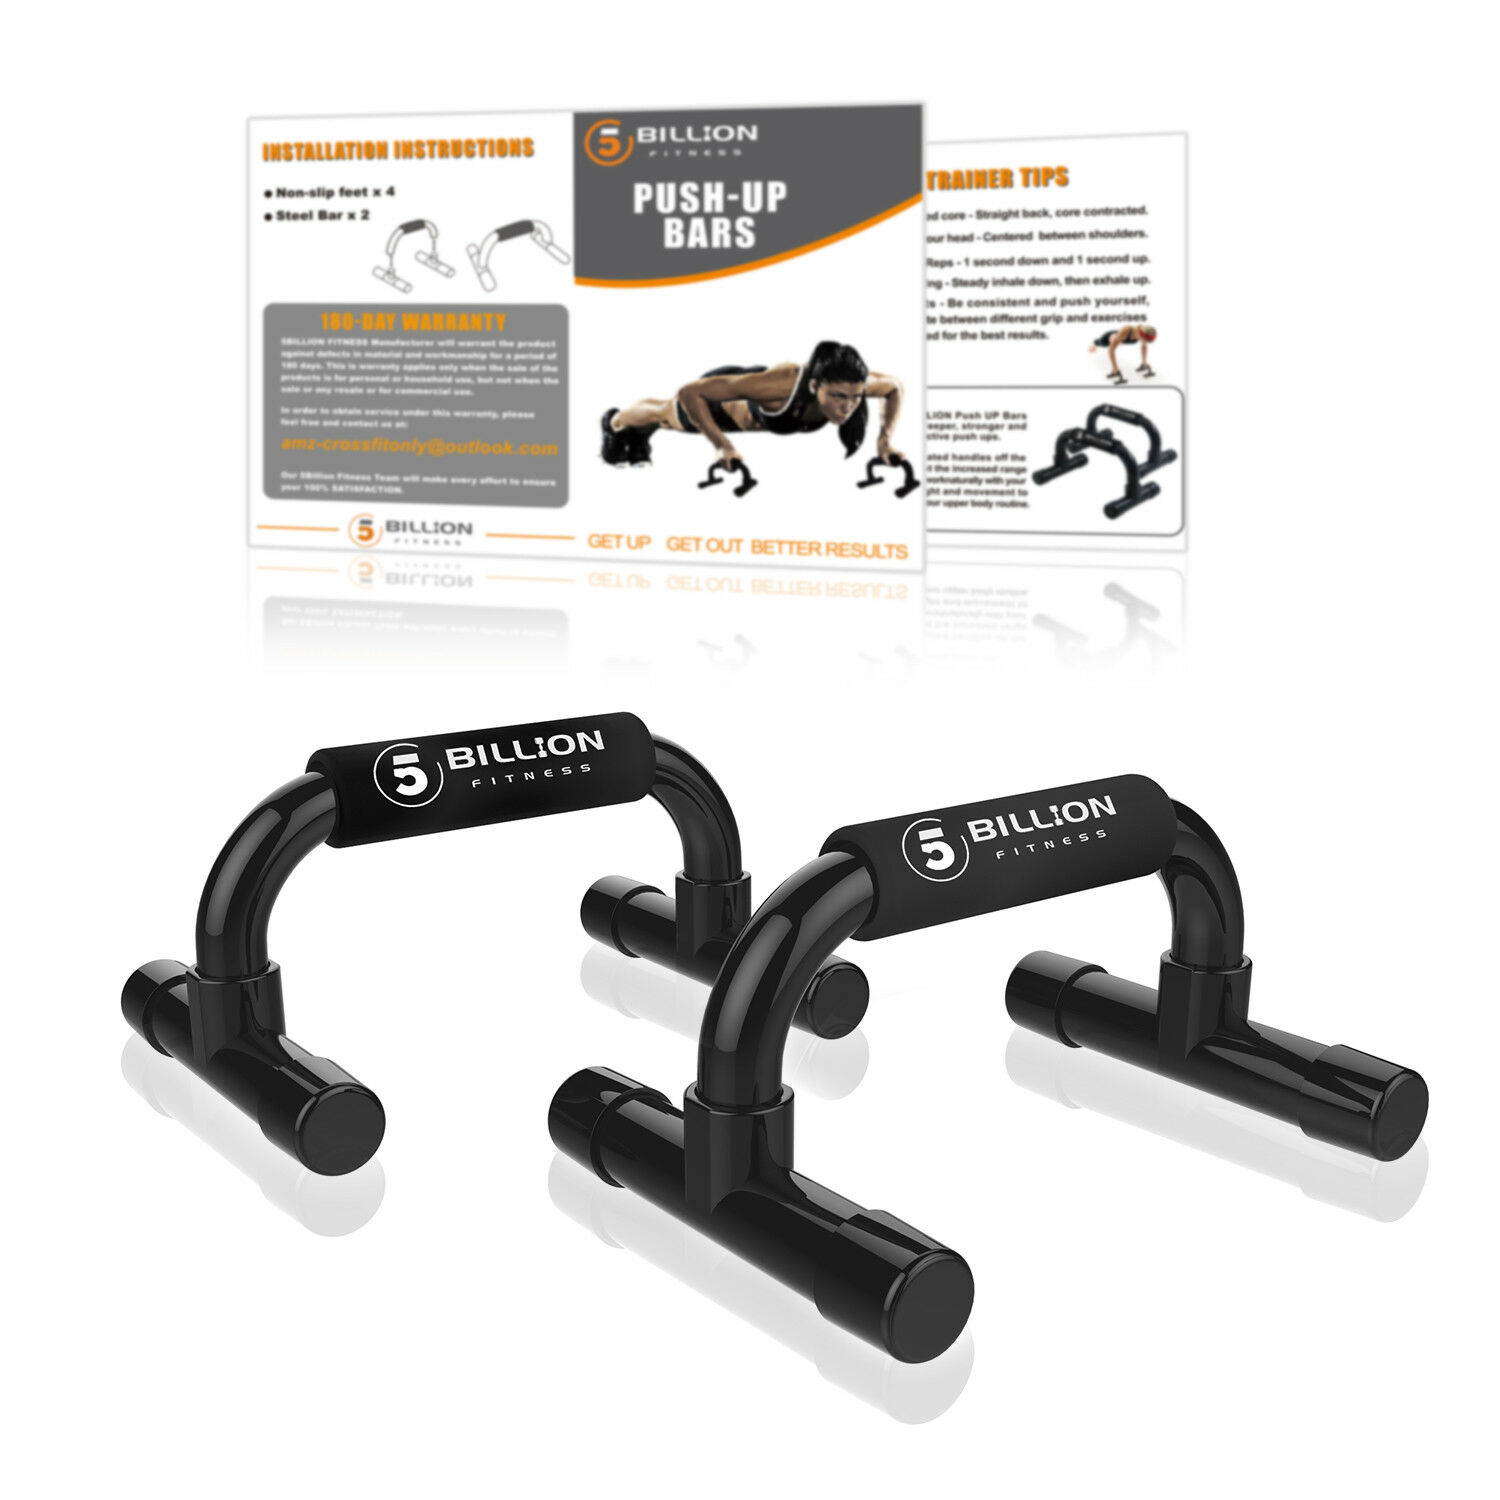 Push Up Bars Exercise Stands Gym Home Grip Sponge Hand 1 Pair Set Training Kit